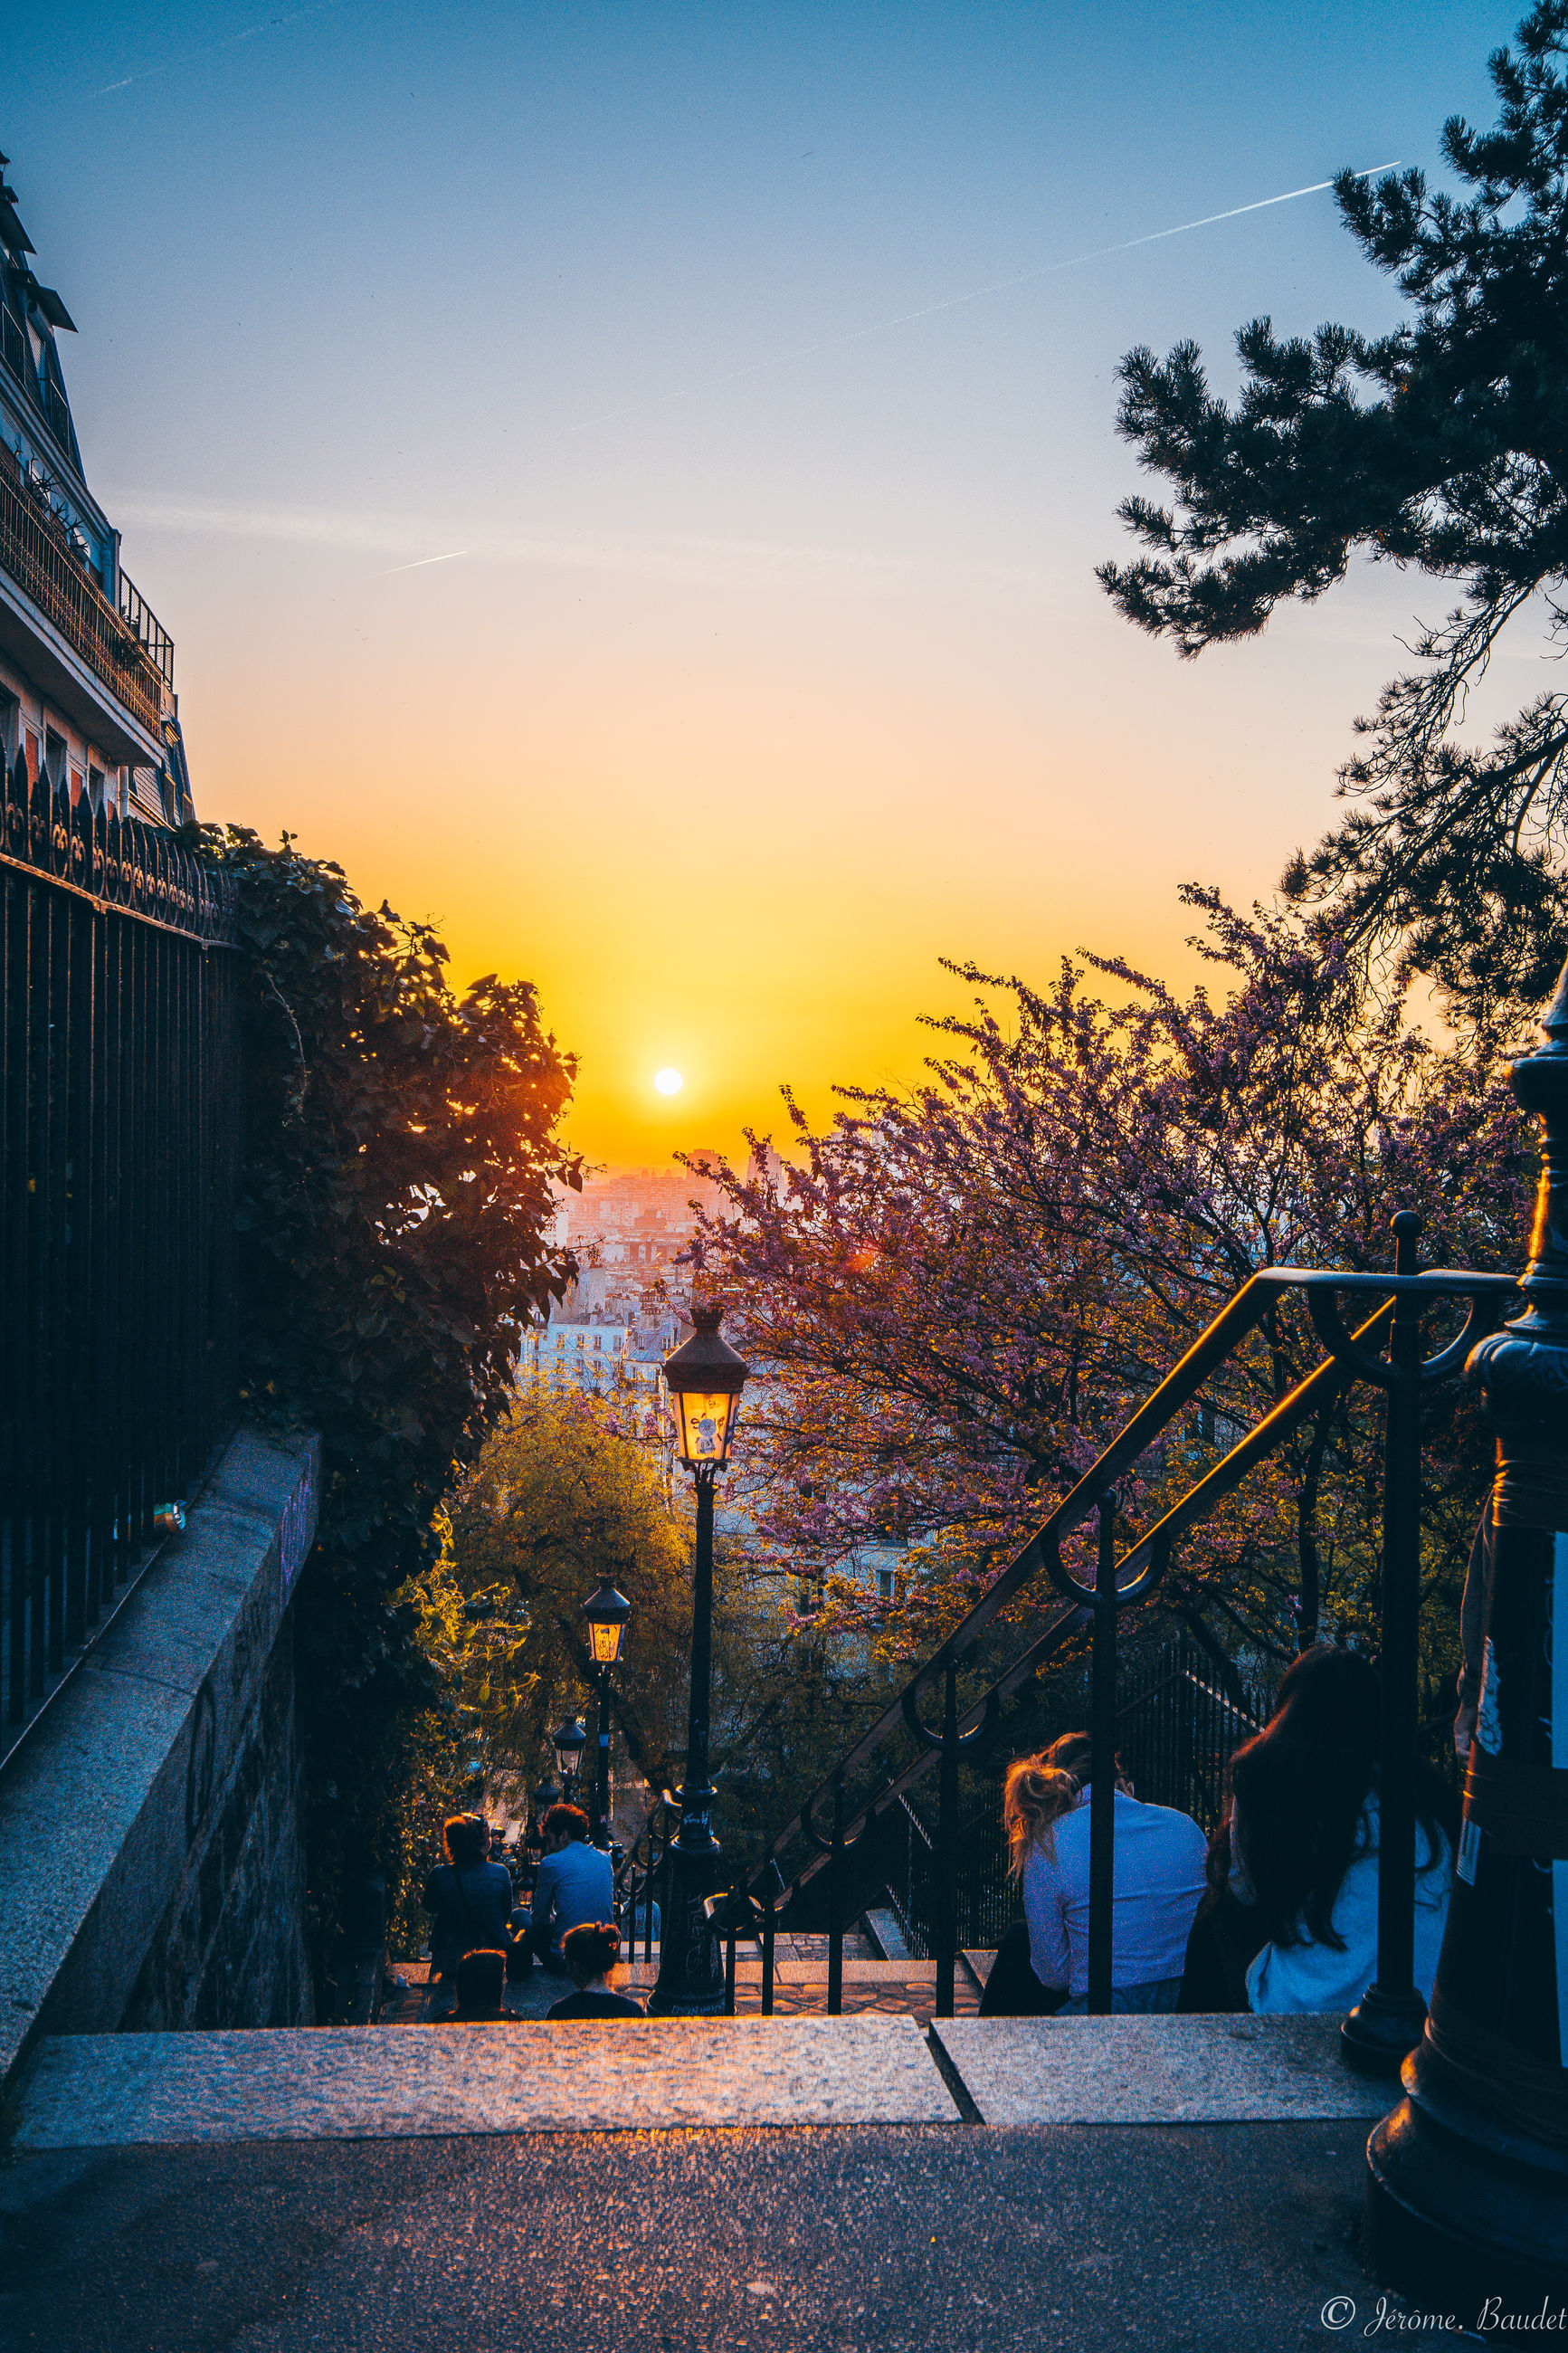 sunset, sky, tree, orange color, plant, architecture, building exterior, nature, city, street, built structure, outdoors, transportation, real people, mode of transportation, sunlight, motor vehicle, illuminated, beauty in nature, silhouette